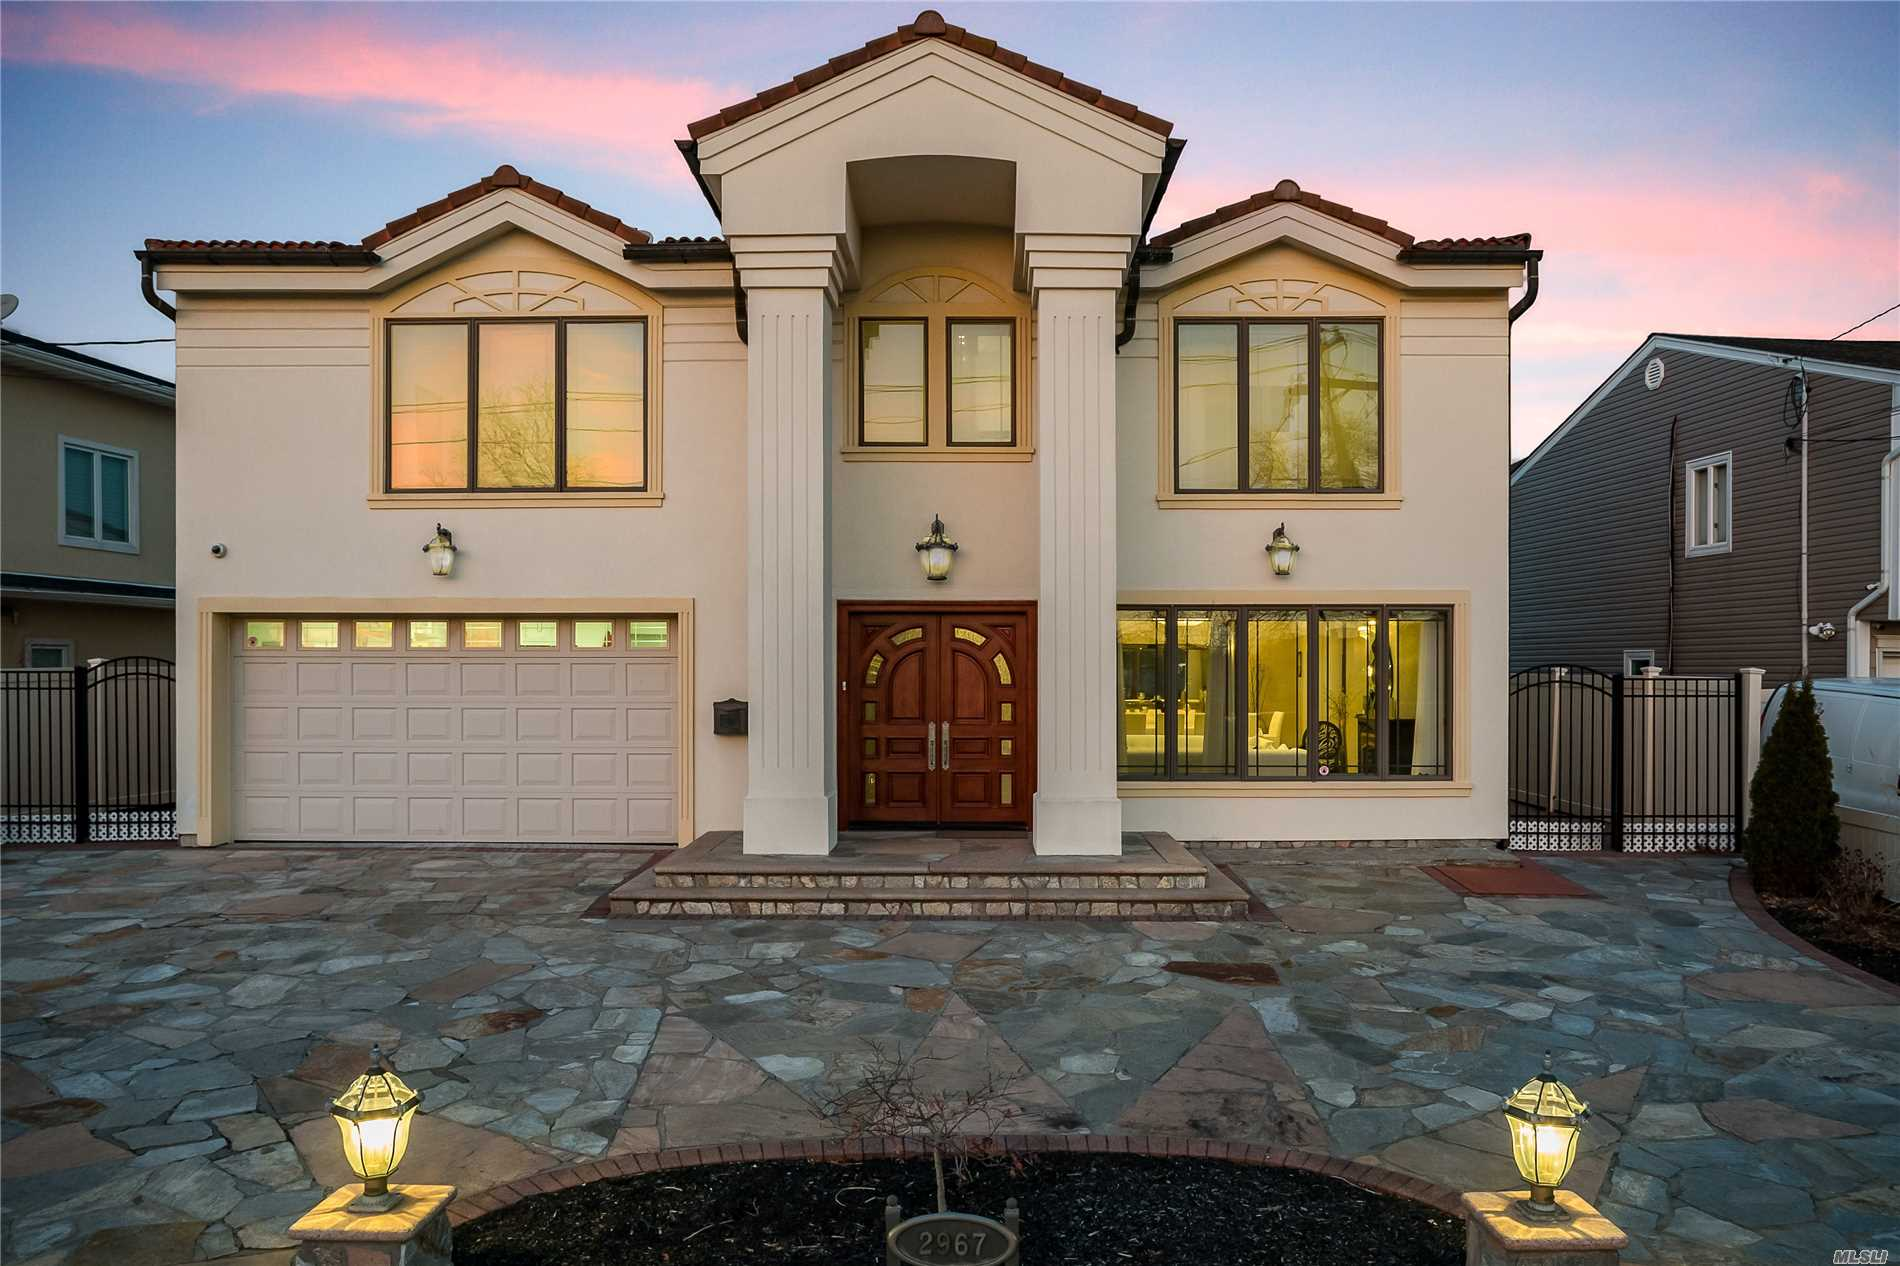 Magnificent, Unique Custom Built Contemporary Masterpiece! State Of The Art, Energy Efficient. Radiant Heat, 4 Bdrm, Plus Private Office, 4.5 Bths, 4 Gas Fireplaces, Imported Granite Floors & Brazilian Cherrywood, Radiant Heat On 3 Levels. Chef's Kitchen W/Wolf Stove, 2 Dishwashers, Breakfast Island W/Sink, 2 Subzero's, 3 Ovens. Wall Of Glass Looking Over Endless Water Views.Terra-Cotta Roof, Too Much To List. See Attachment Discription